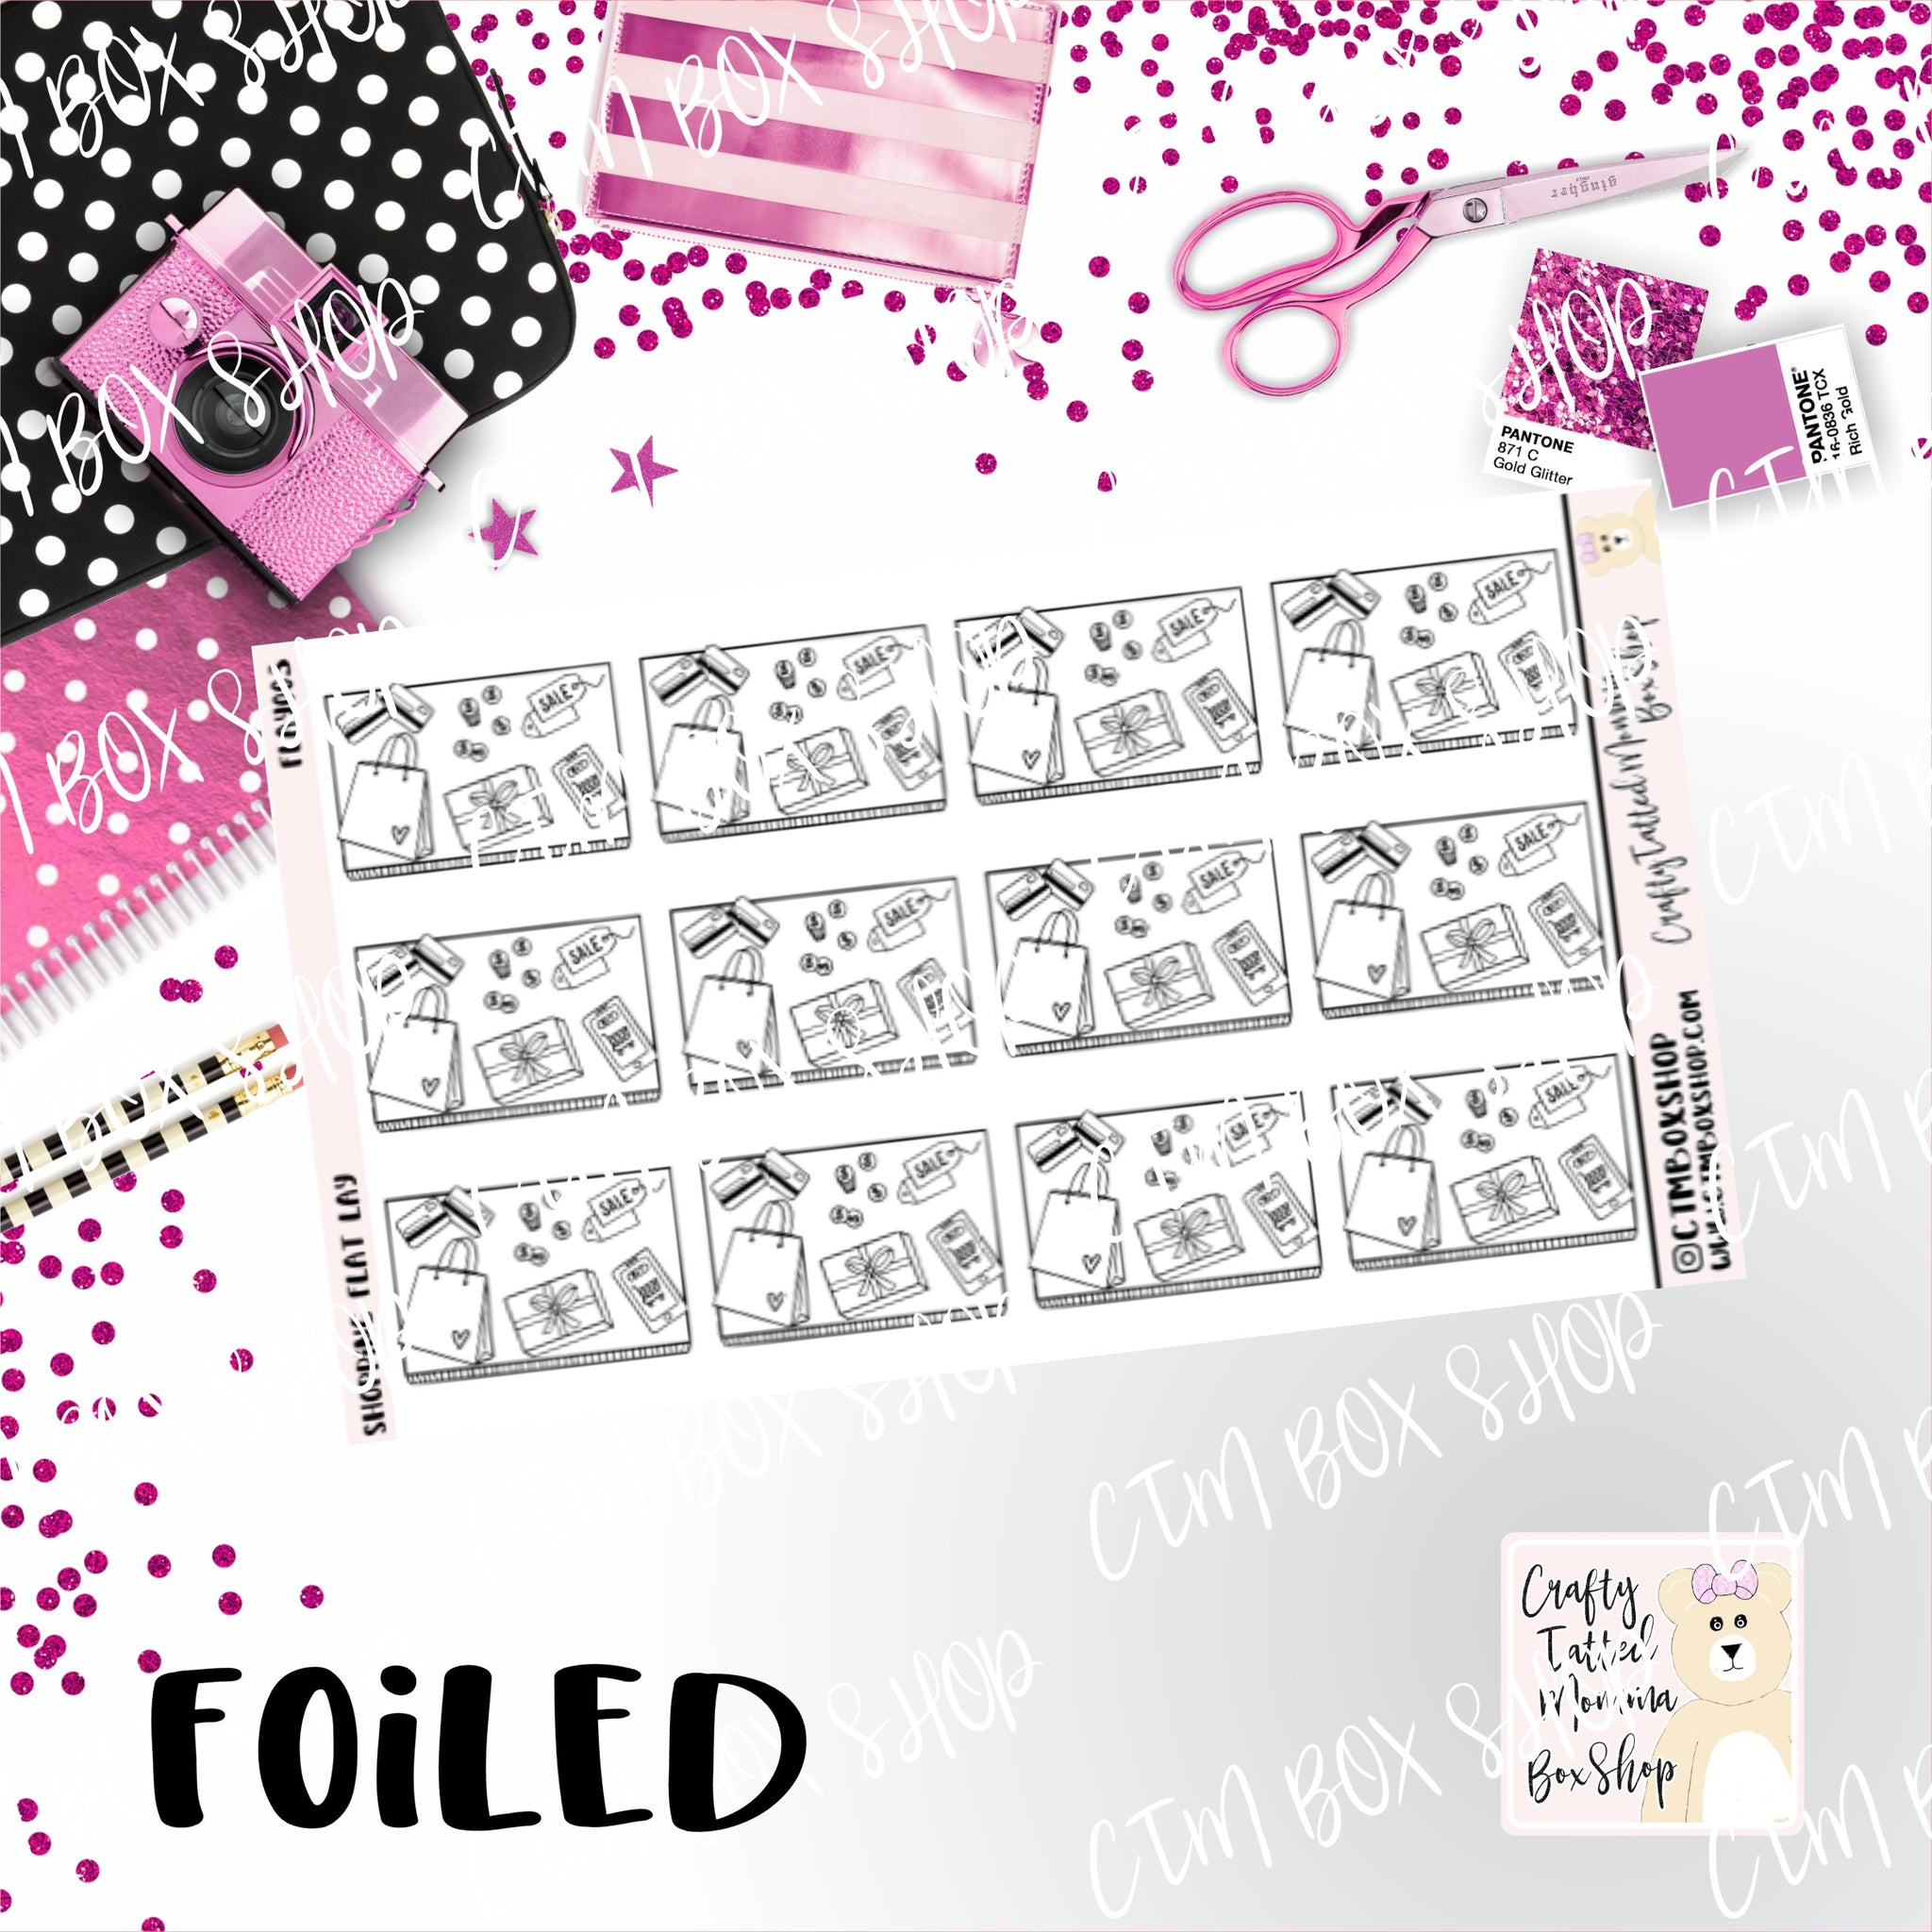 Foiled Shopping Flat Lay Planner Stickers  / Shopping Stickers / Foiled Stickers / Planner Stickers / Flat Lay Stickers